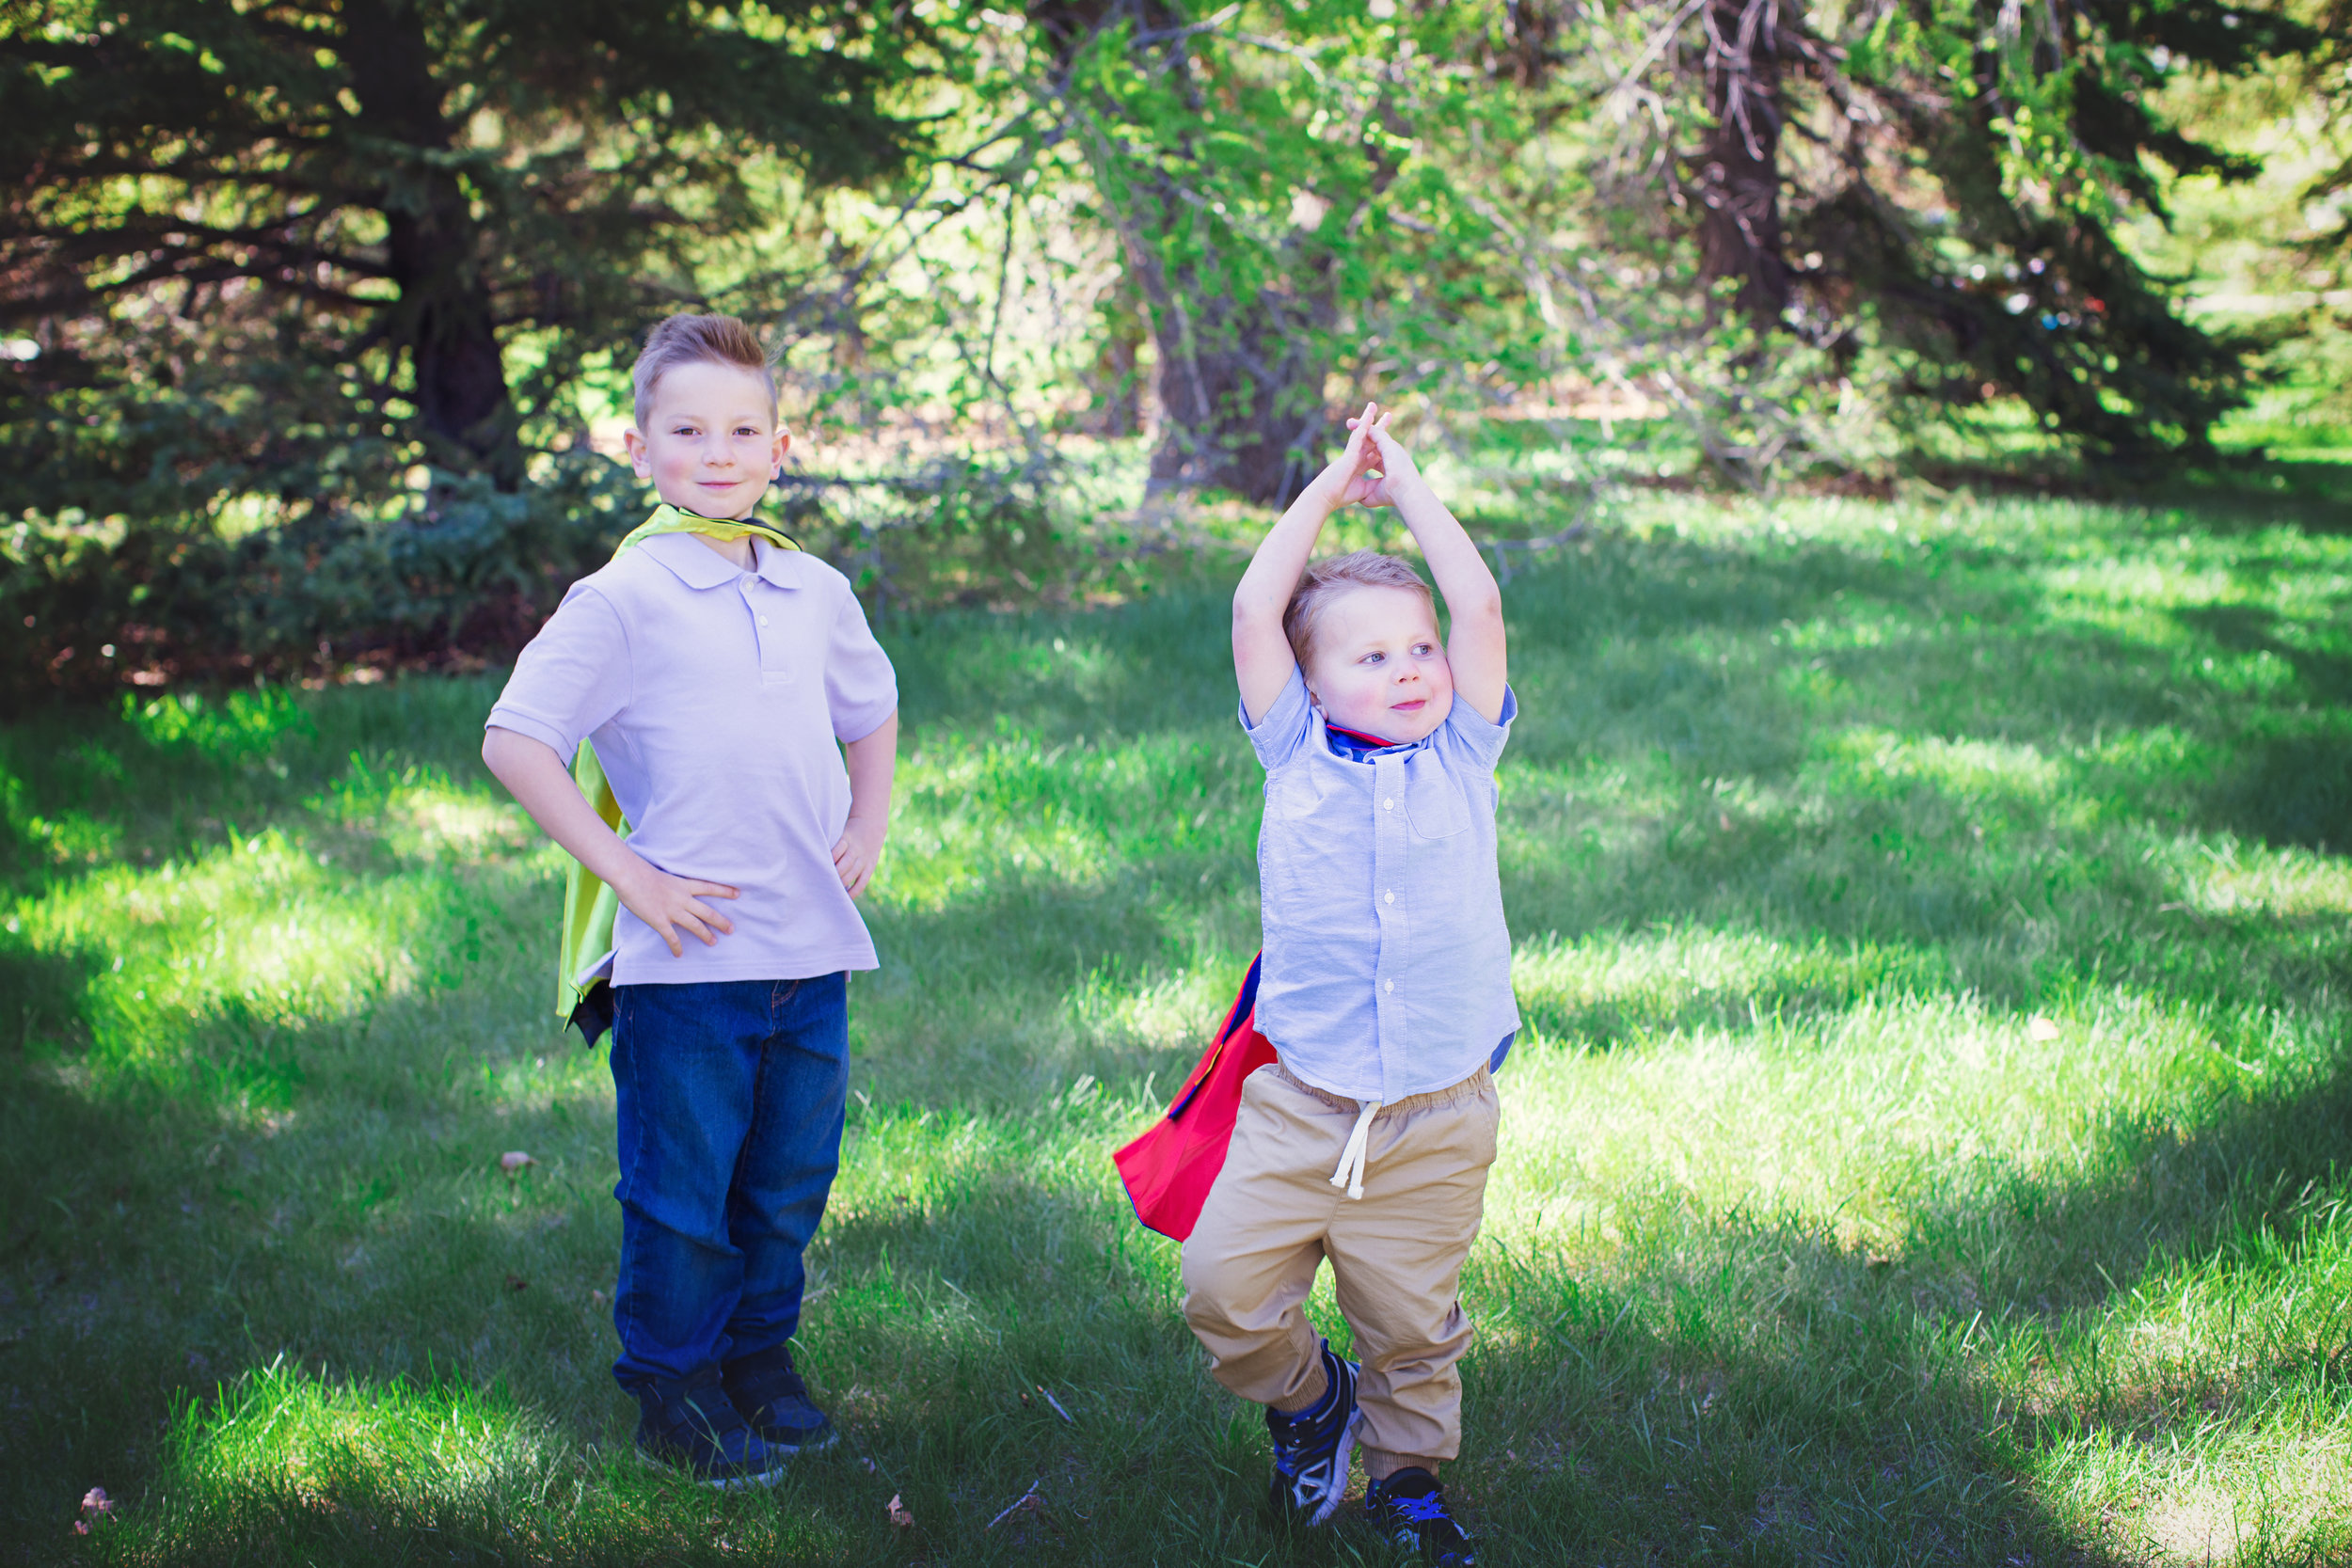 Brothers are wearing superhero capes and posing. Baker's park in Calgary. Calgary family photographer. Milashka Photography